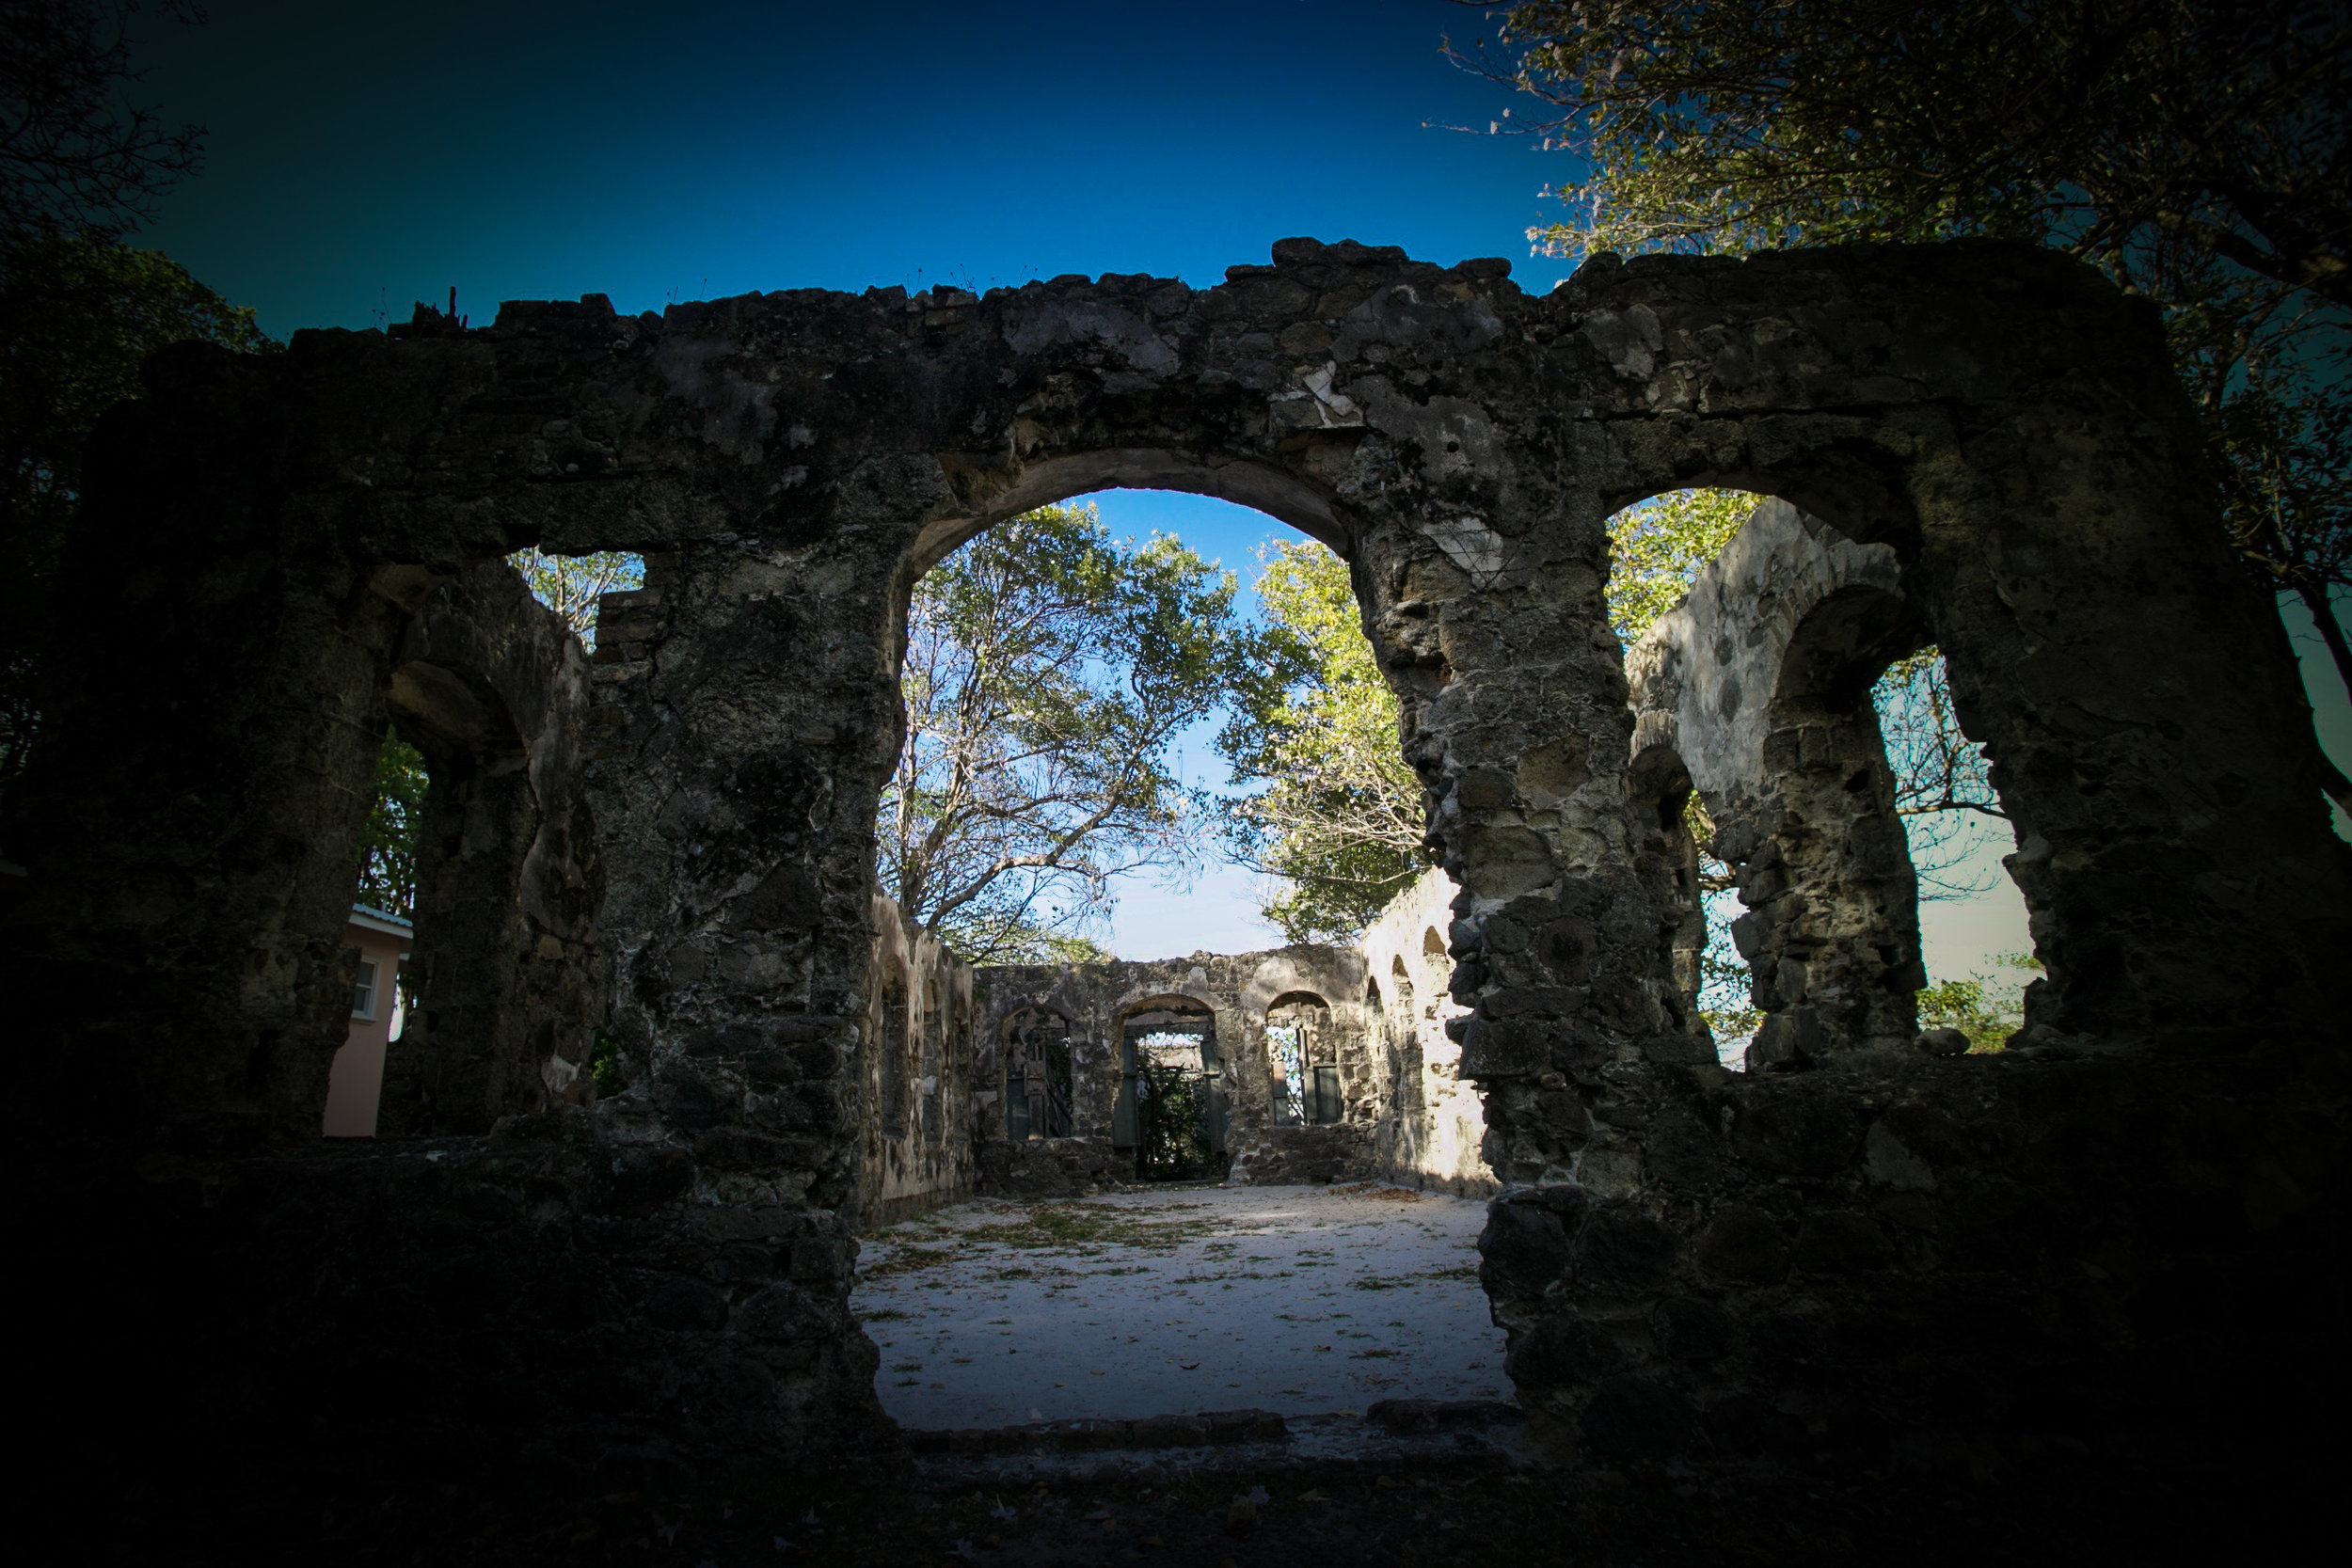 The ruins are a perfect setting for a wedding shoot within the ruins of military buildings used during the battles between the French and the British for the island of Saint Lucia. Photography Courtesy of The Aisle Photography